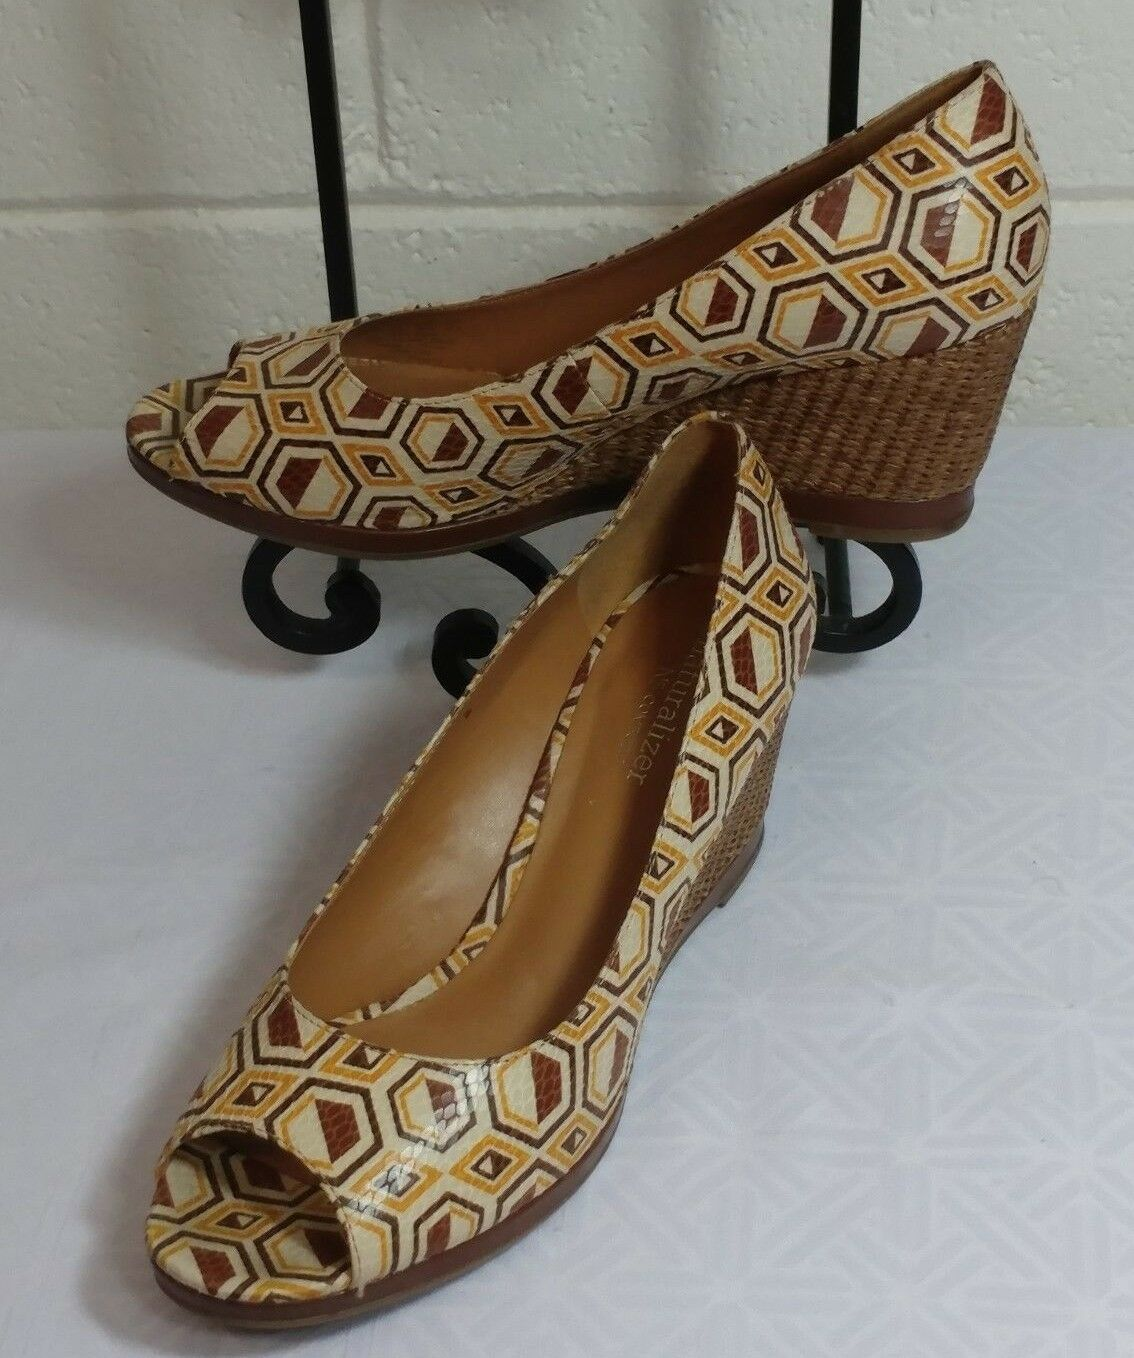 NATURALIZER N5 COMFORT SHOES Size 8.5M